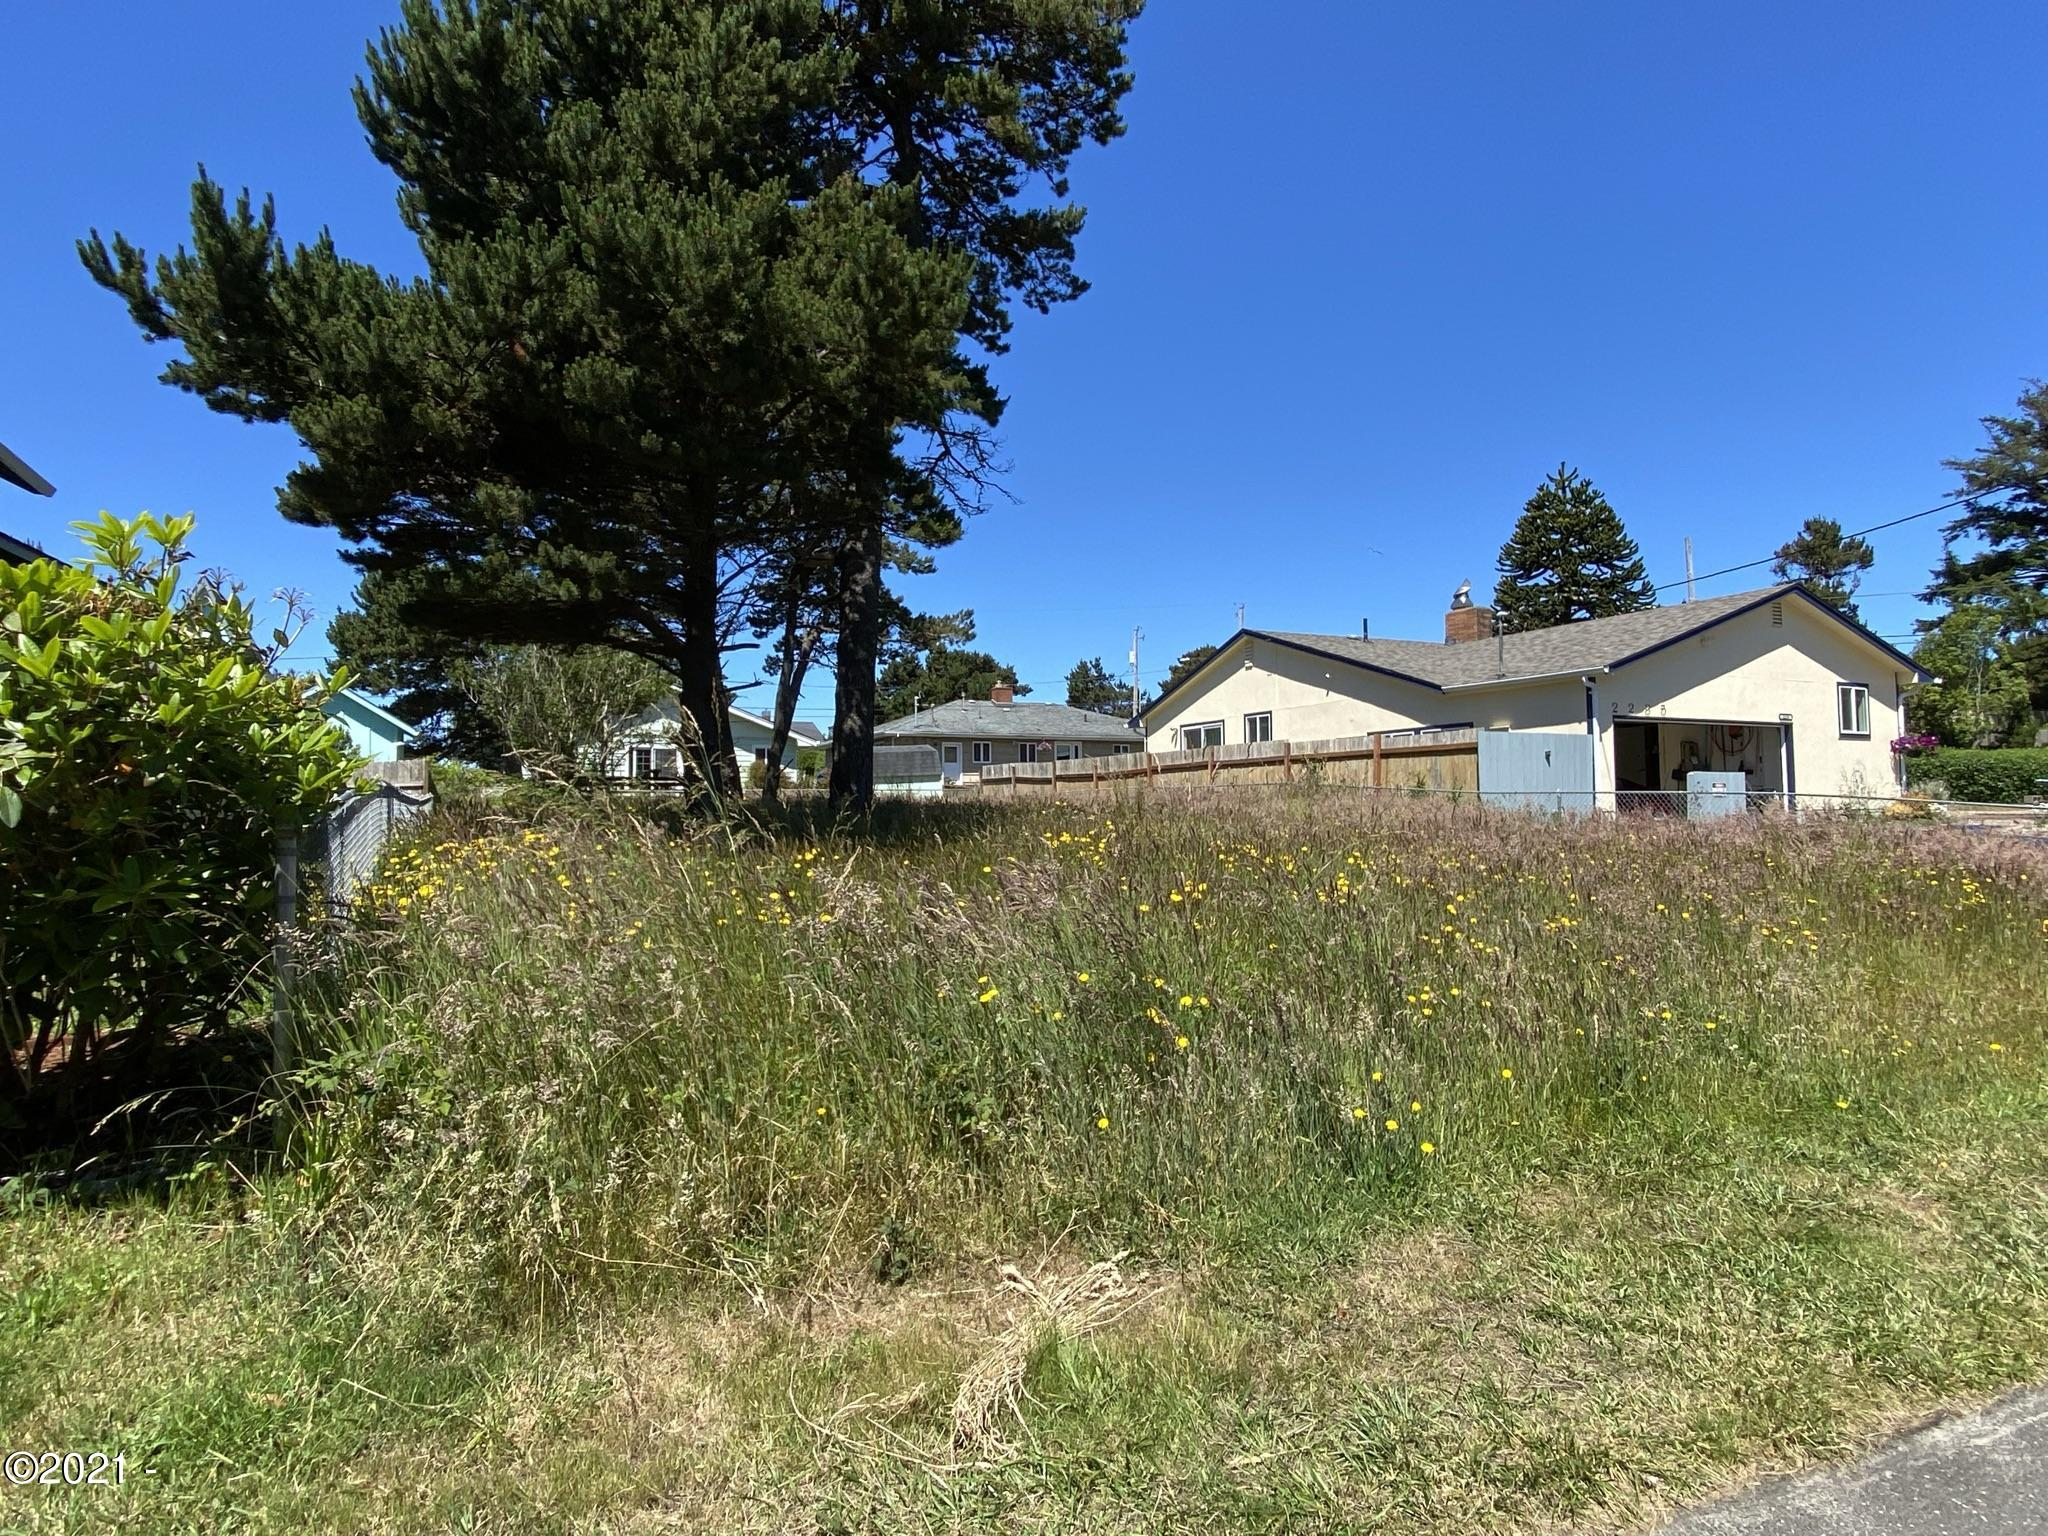 2200 Blk Nw Jetty Ave Tl 3700, Lincoln City, OR 97367 - IMG_4460